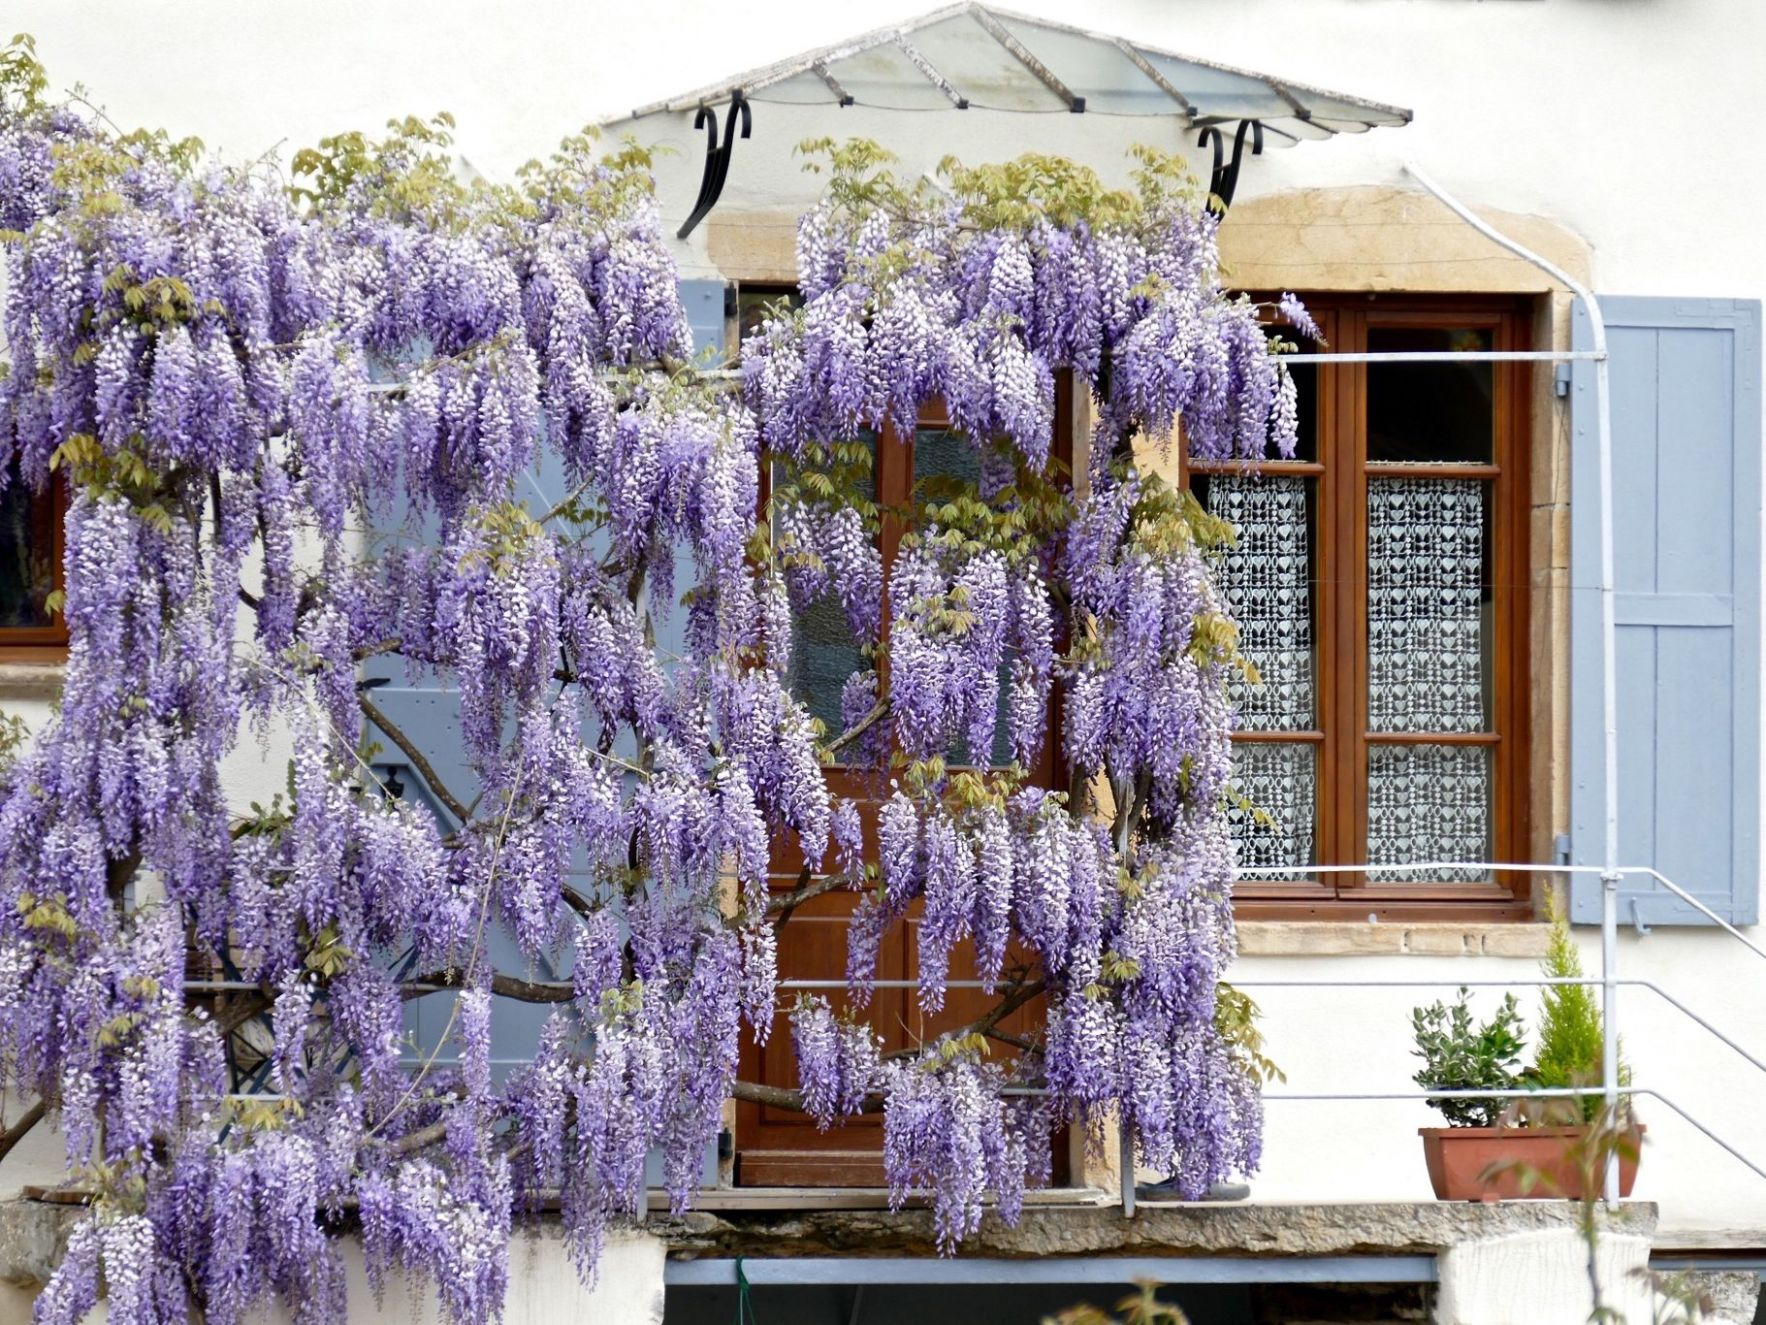 Design Ideas for Flowering Vines - backyard vines ideas